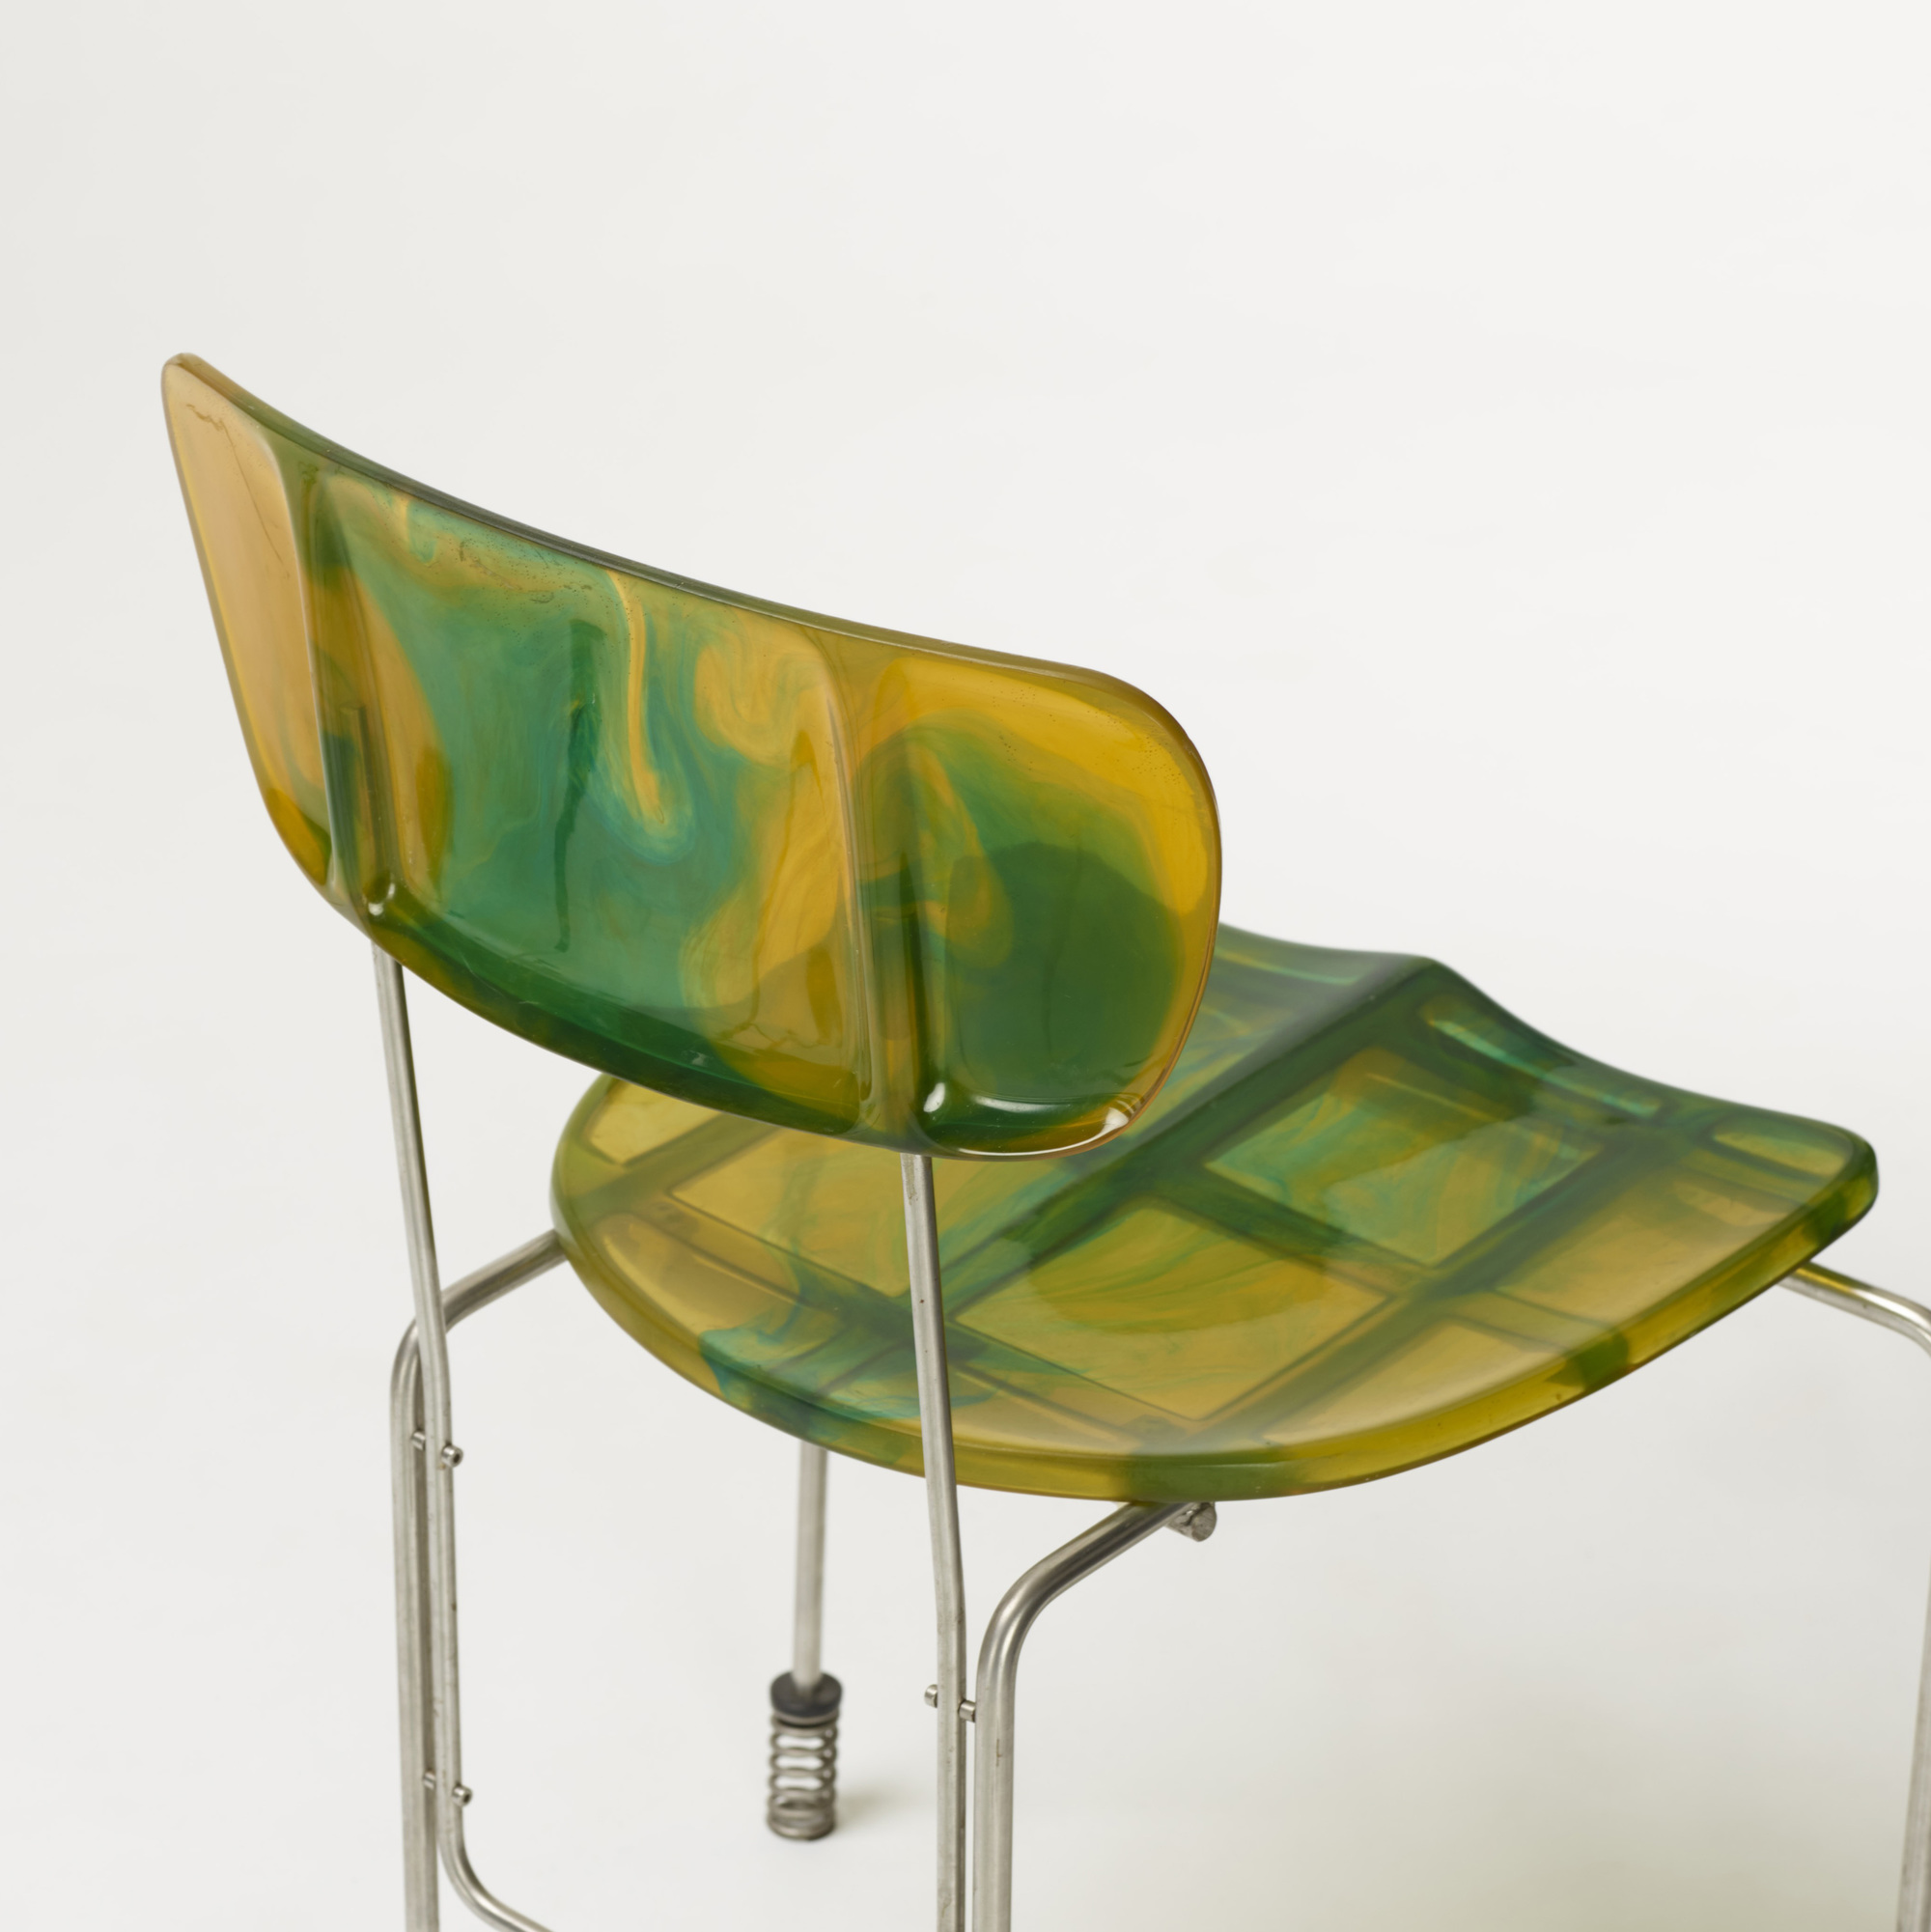 257: Gaetano Pesce / 543 Broadway chairs, set of four (4 of 5)